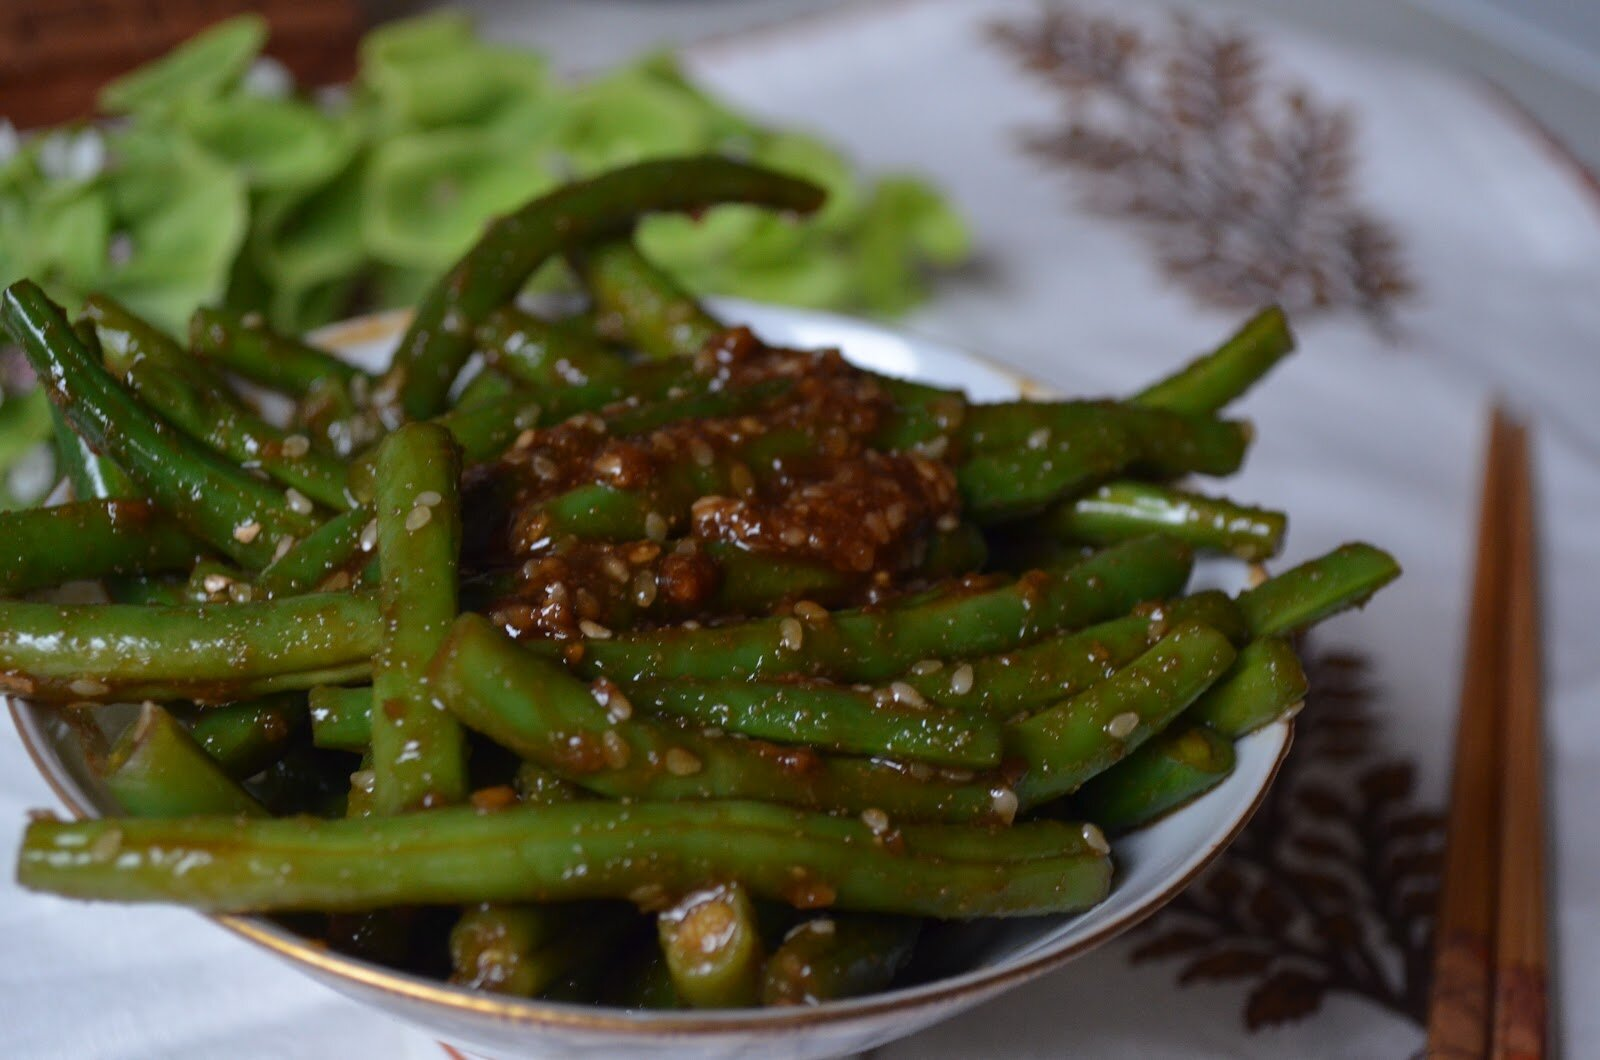 Spicy Green Beans with Homemade Soy-Free Teriyaki Sauce - The Tasty ...